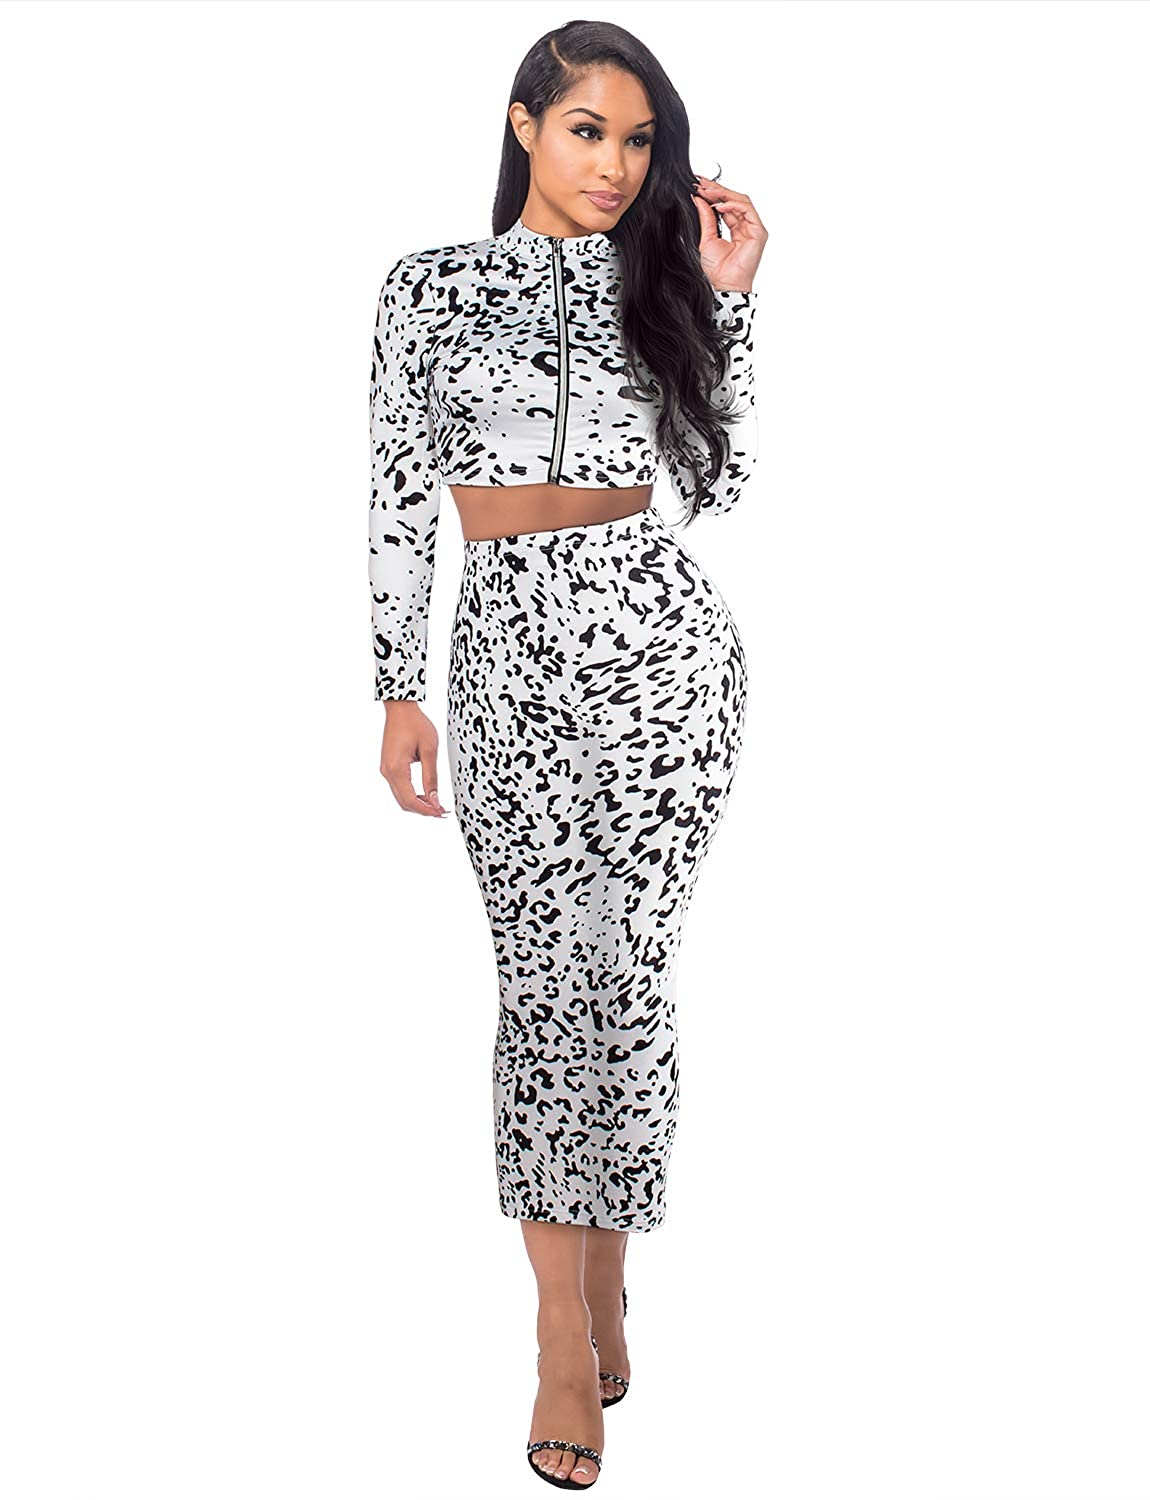 35043aef0c6e9 Sedrinuo Women Sexy Leopard Print Dress Elegant Long Sleeve 2 Piece Outfits  Party Club Dress at Amazon Women s Clothing store